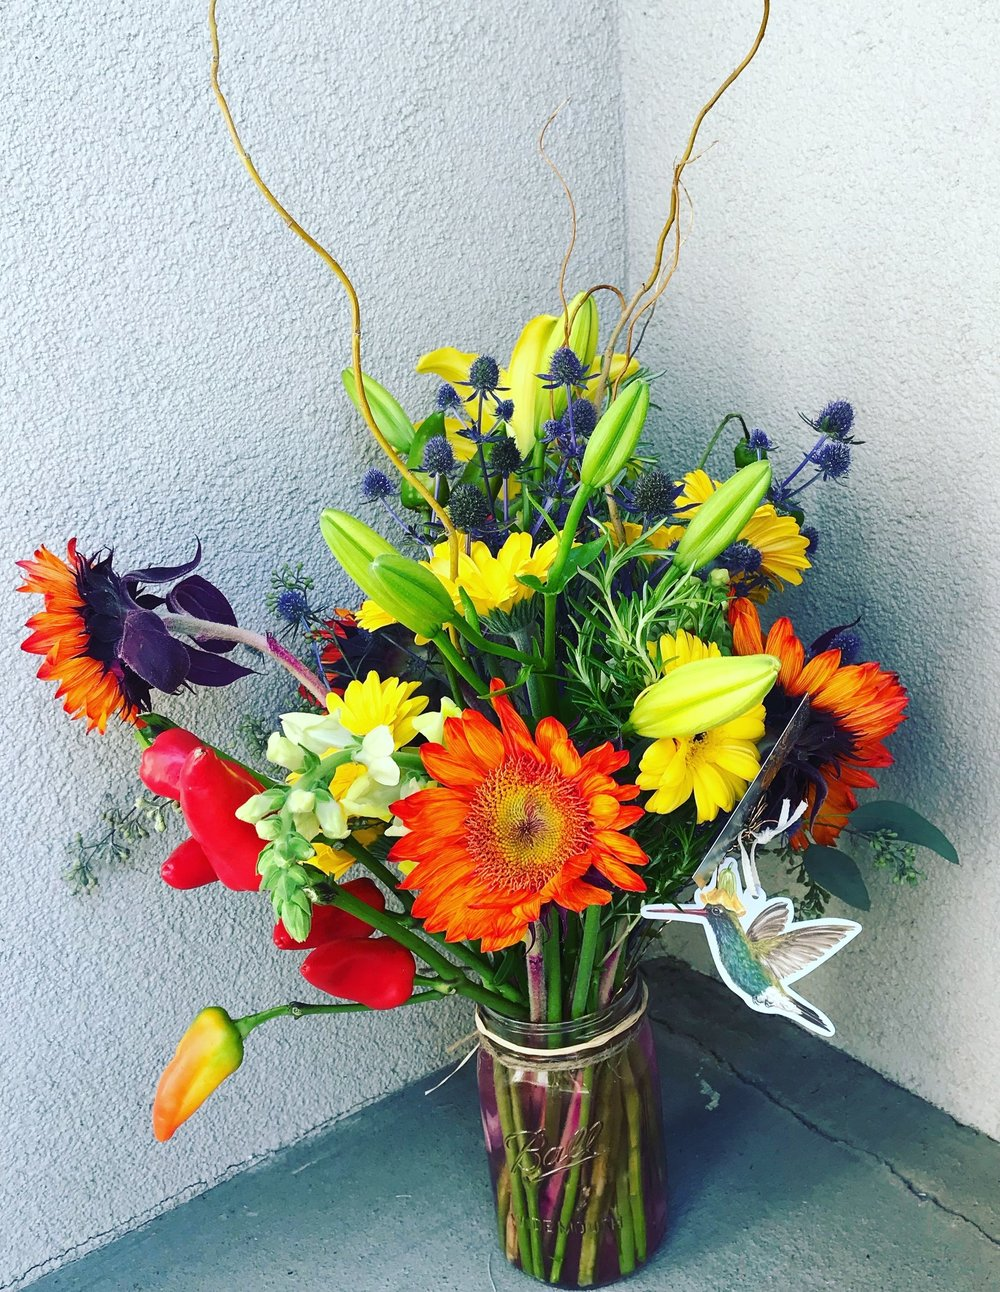 Bend Floral Artistry   - Custom Floral Arrangements for every occasion. Flower Deliveries in Bend, Oregon. Your Local Bend, Oregon Bespoke Florist.